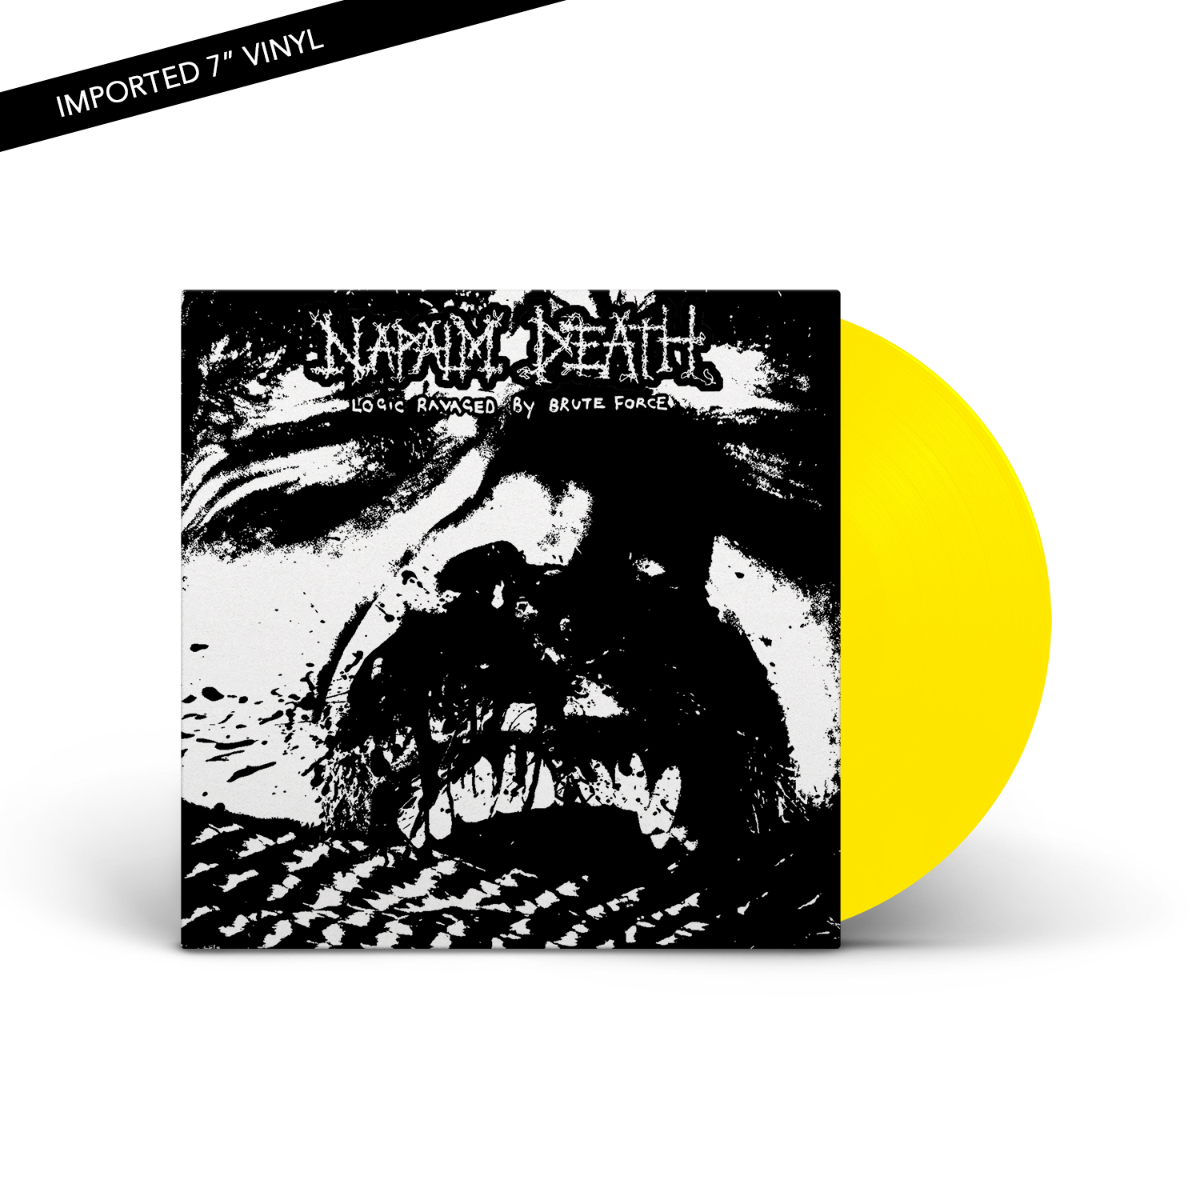 "Napalm Death - Logic Ravaged By Brute Force Neon Yellow 7"" Vinyl LP"